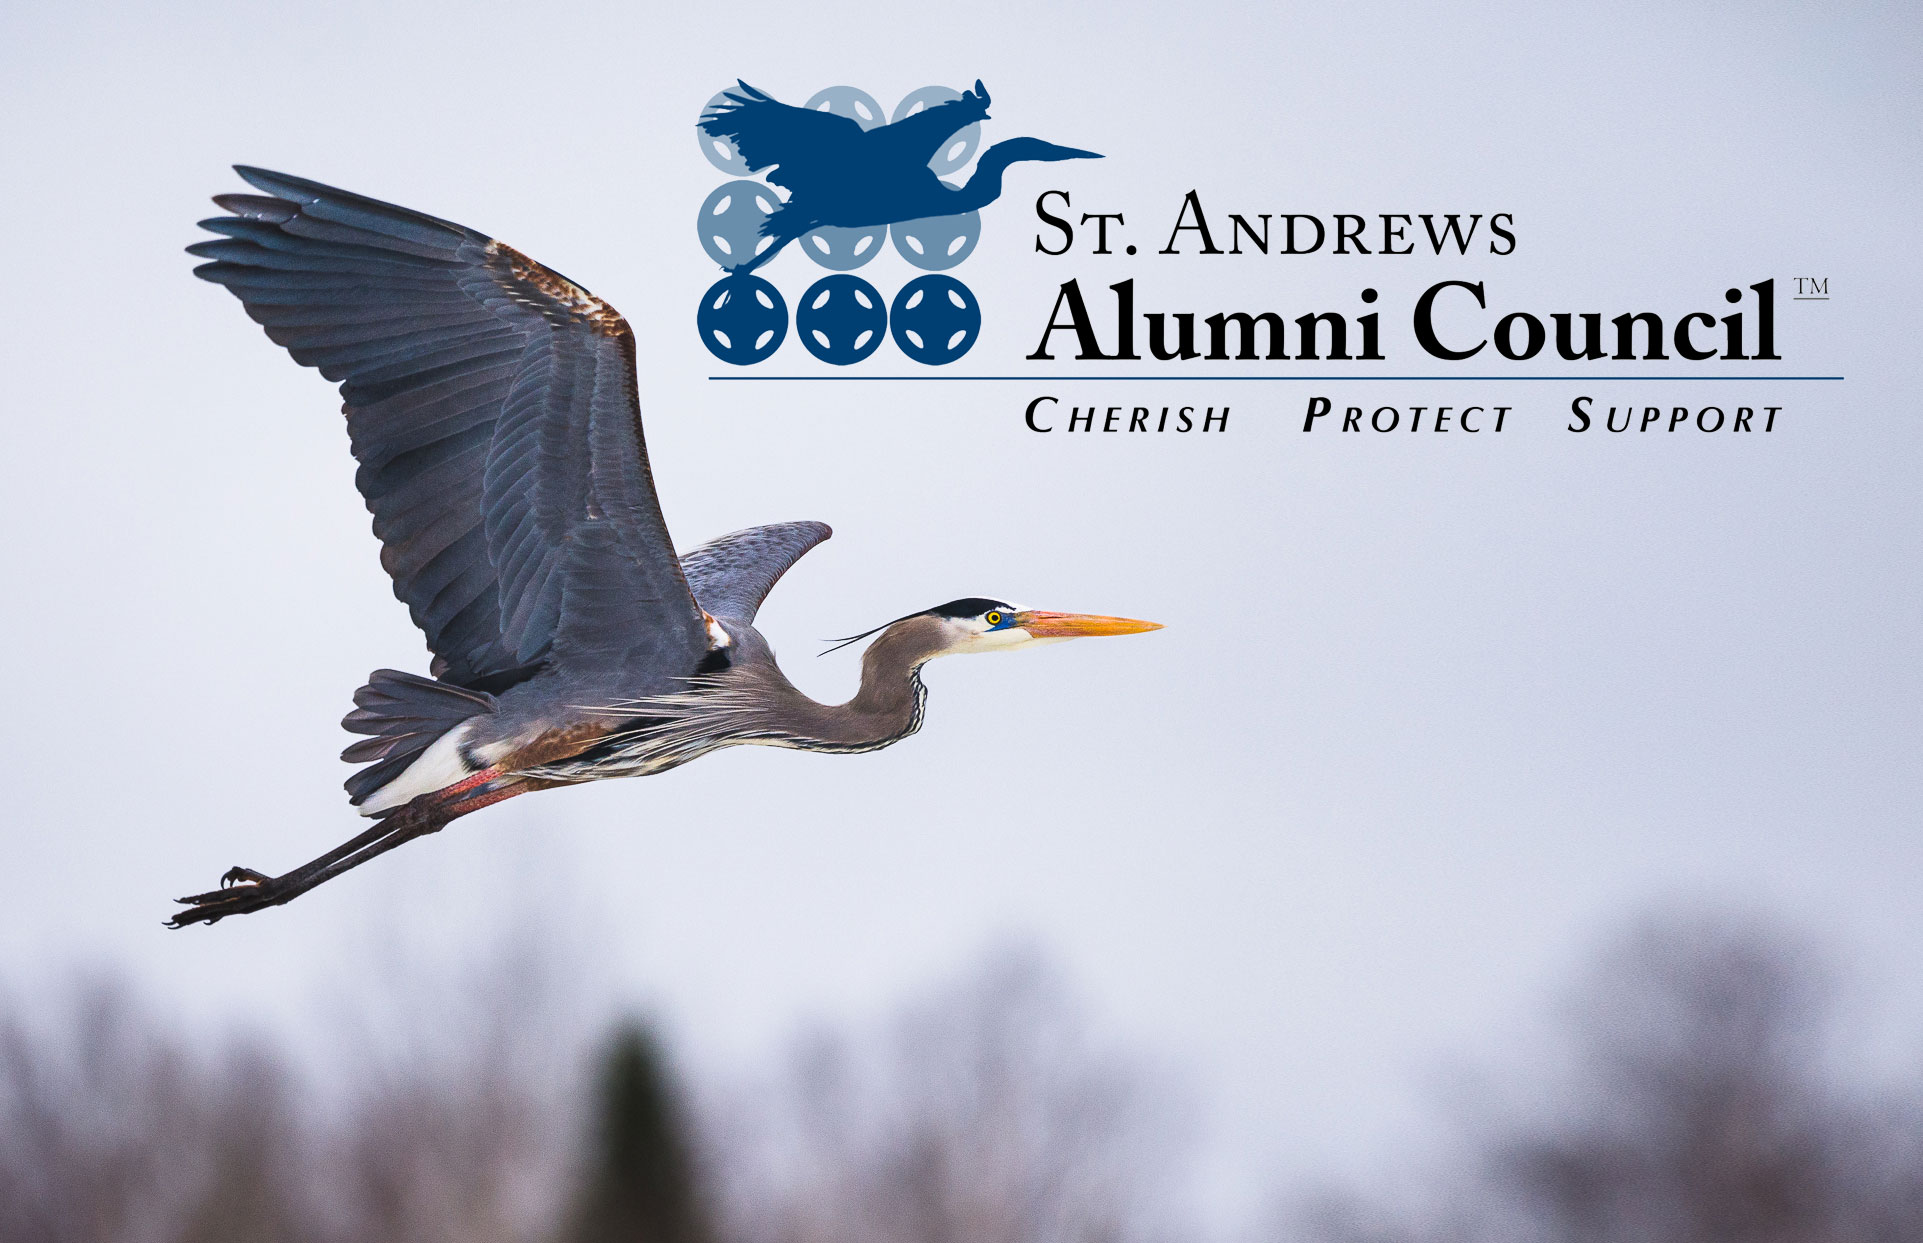 About the St. Andrews Alumni Council Logo